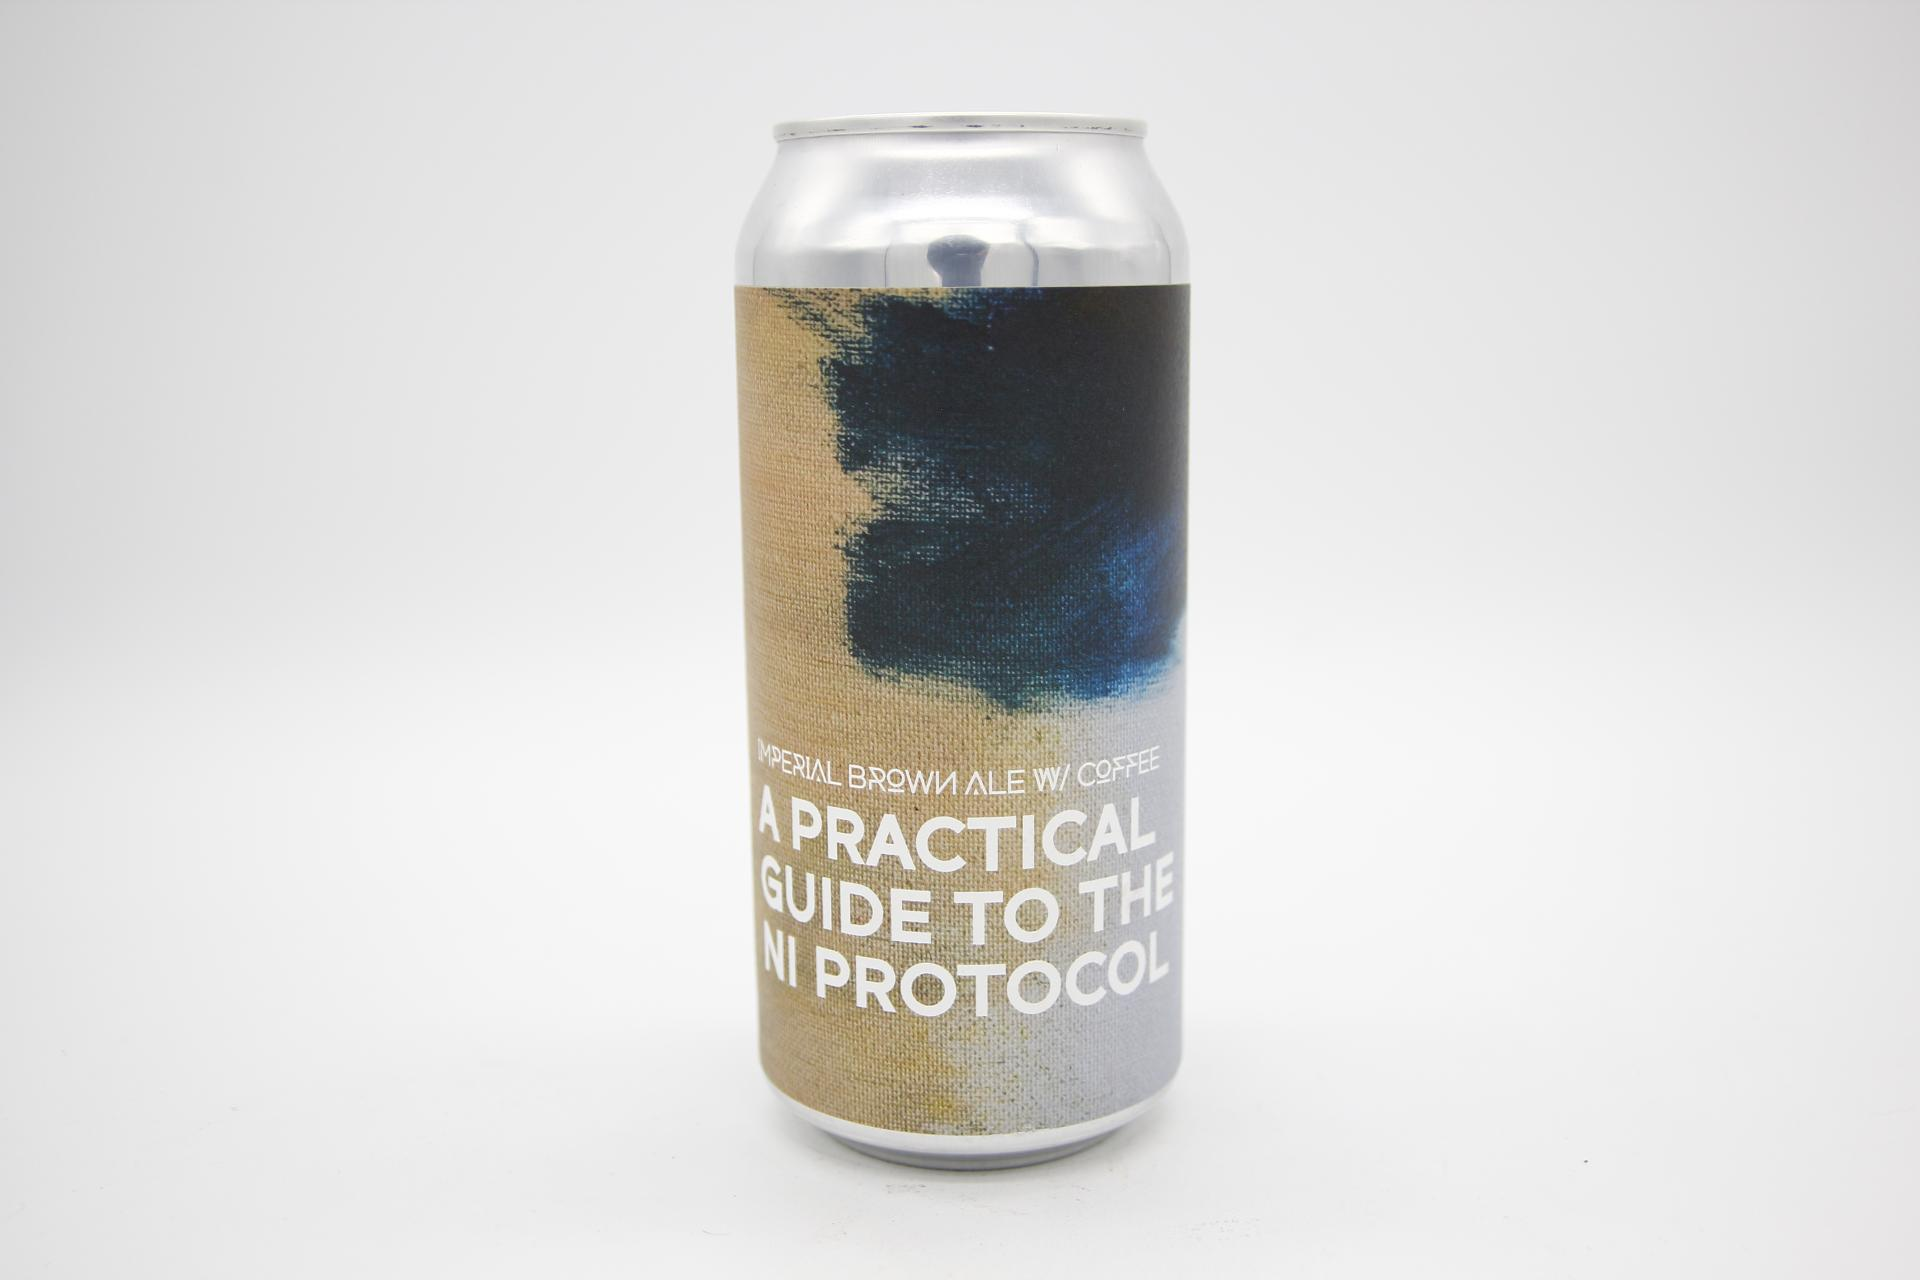 BOUNDARY- A PRACTICAL GUIDE TO THE NI PROTOCOL 44cl